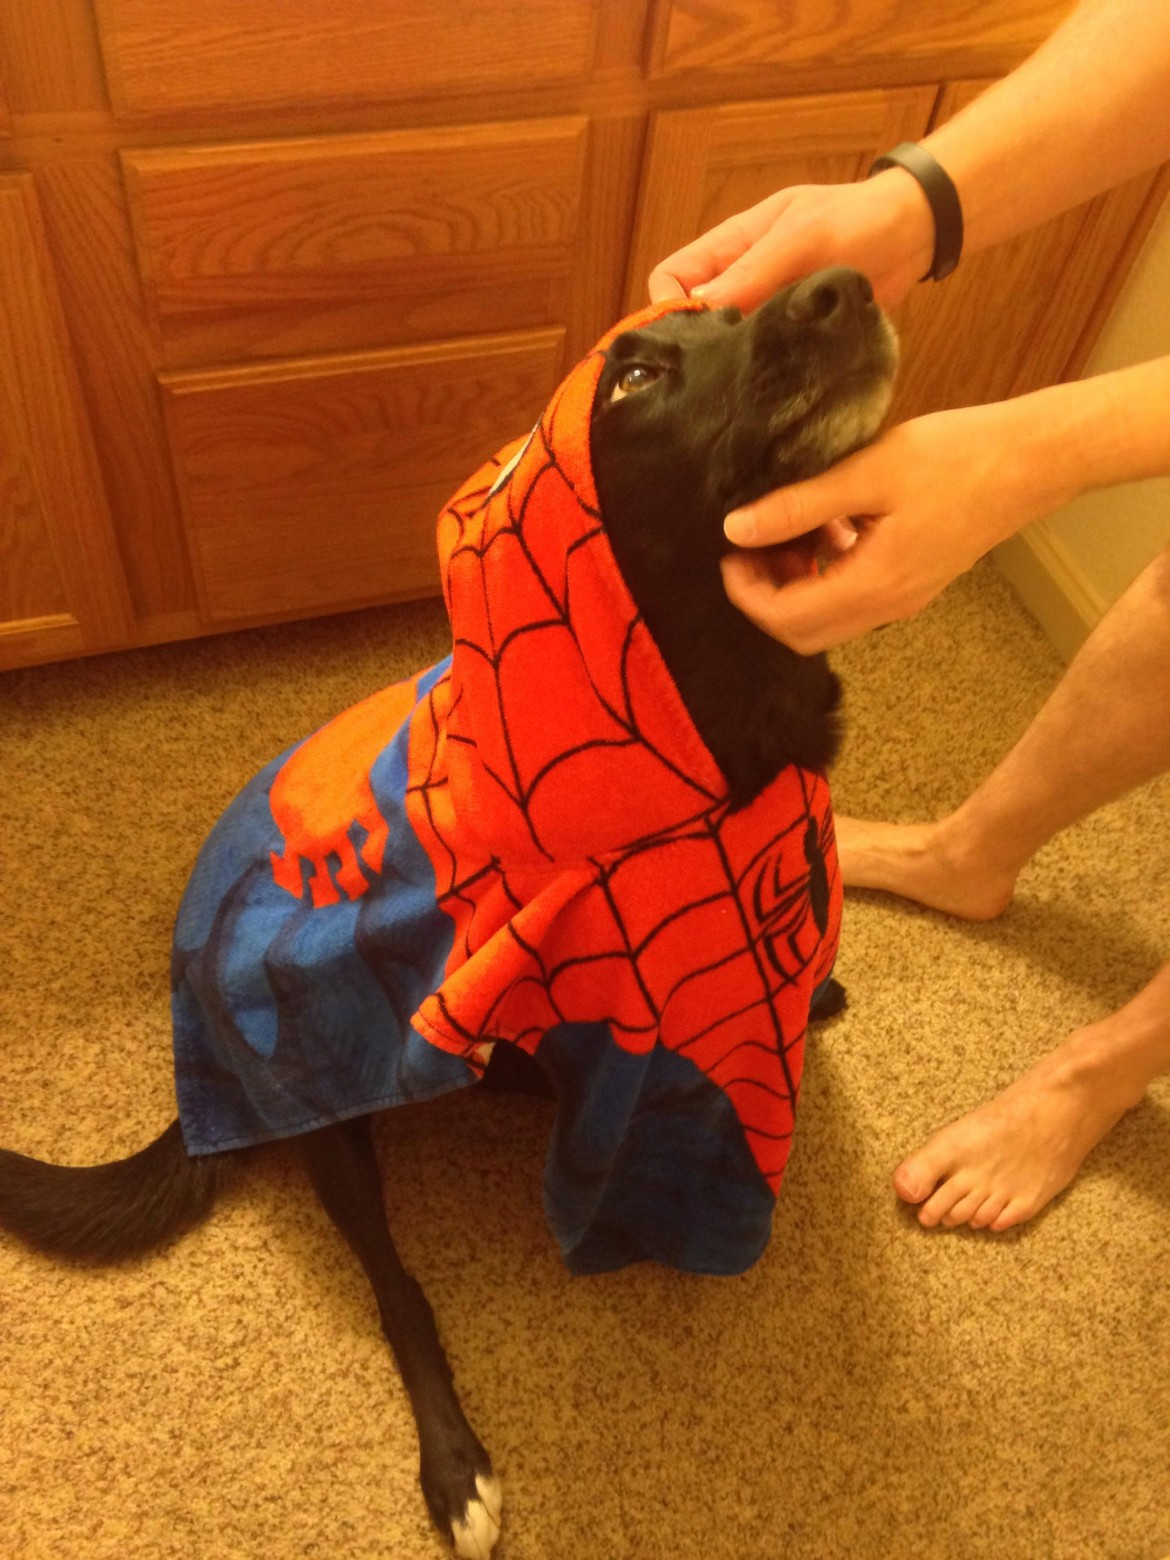 My dog likes to drag around my Spider-Man towel. I choose to share this on my cake day!